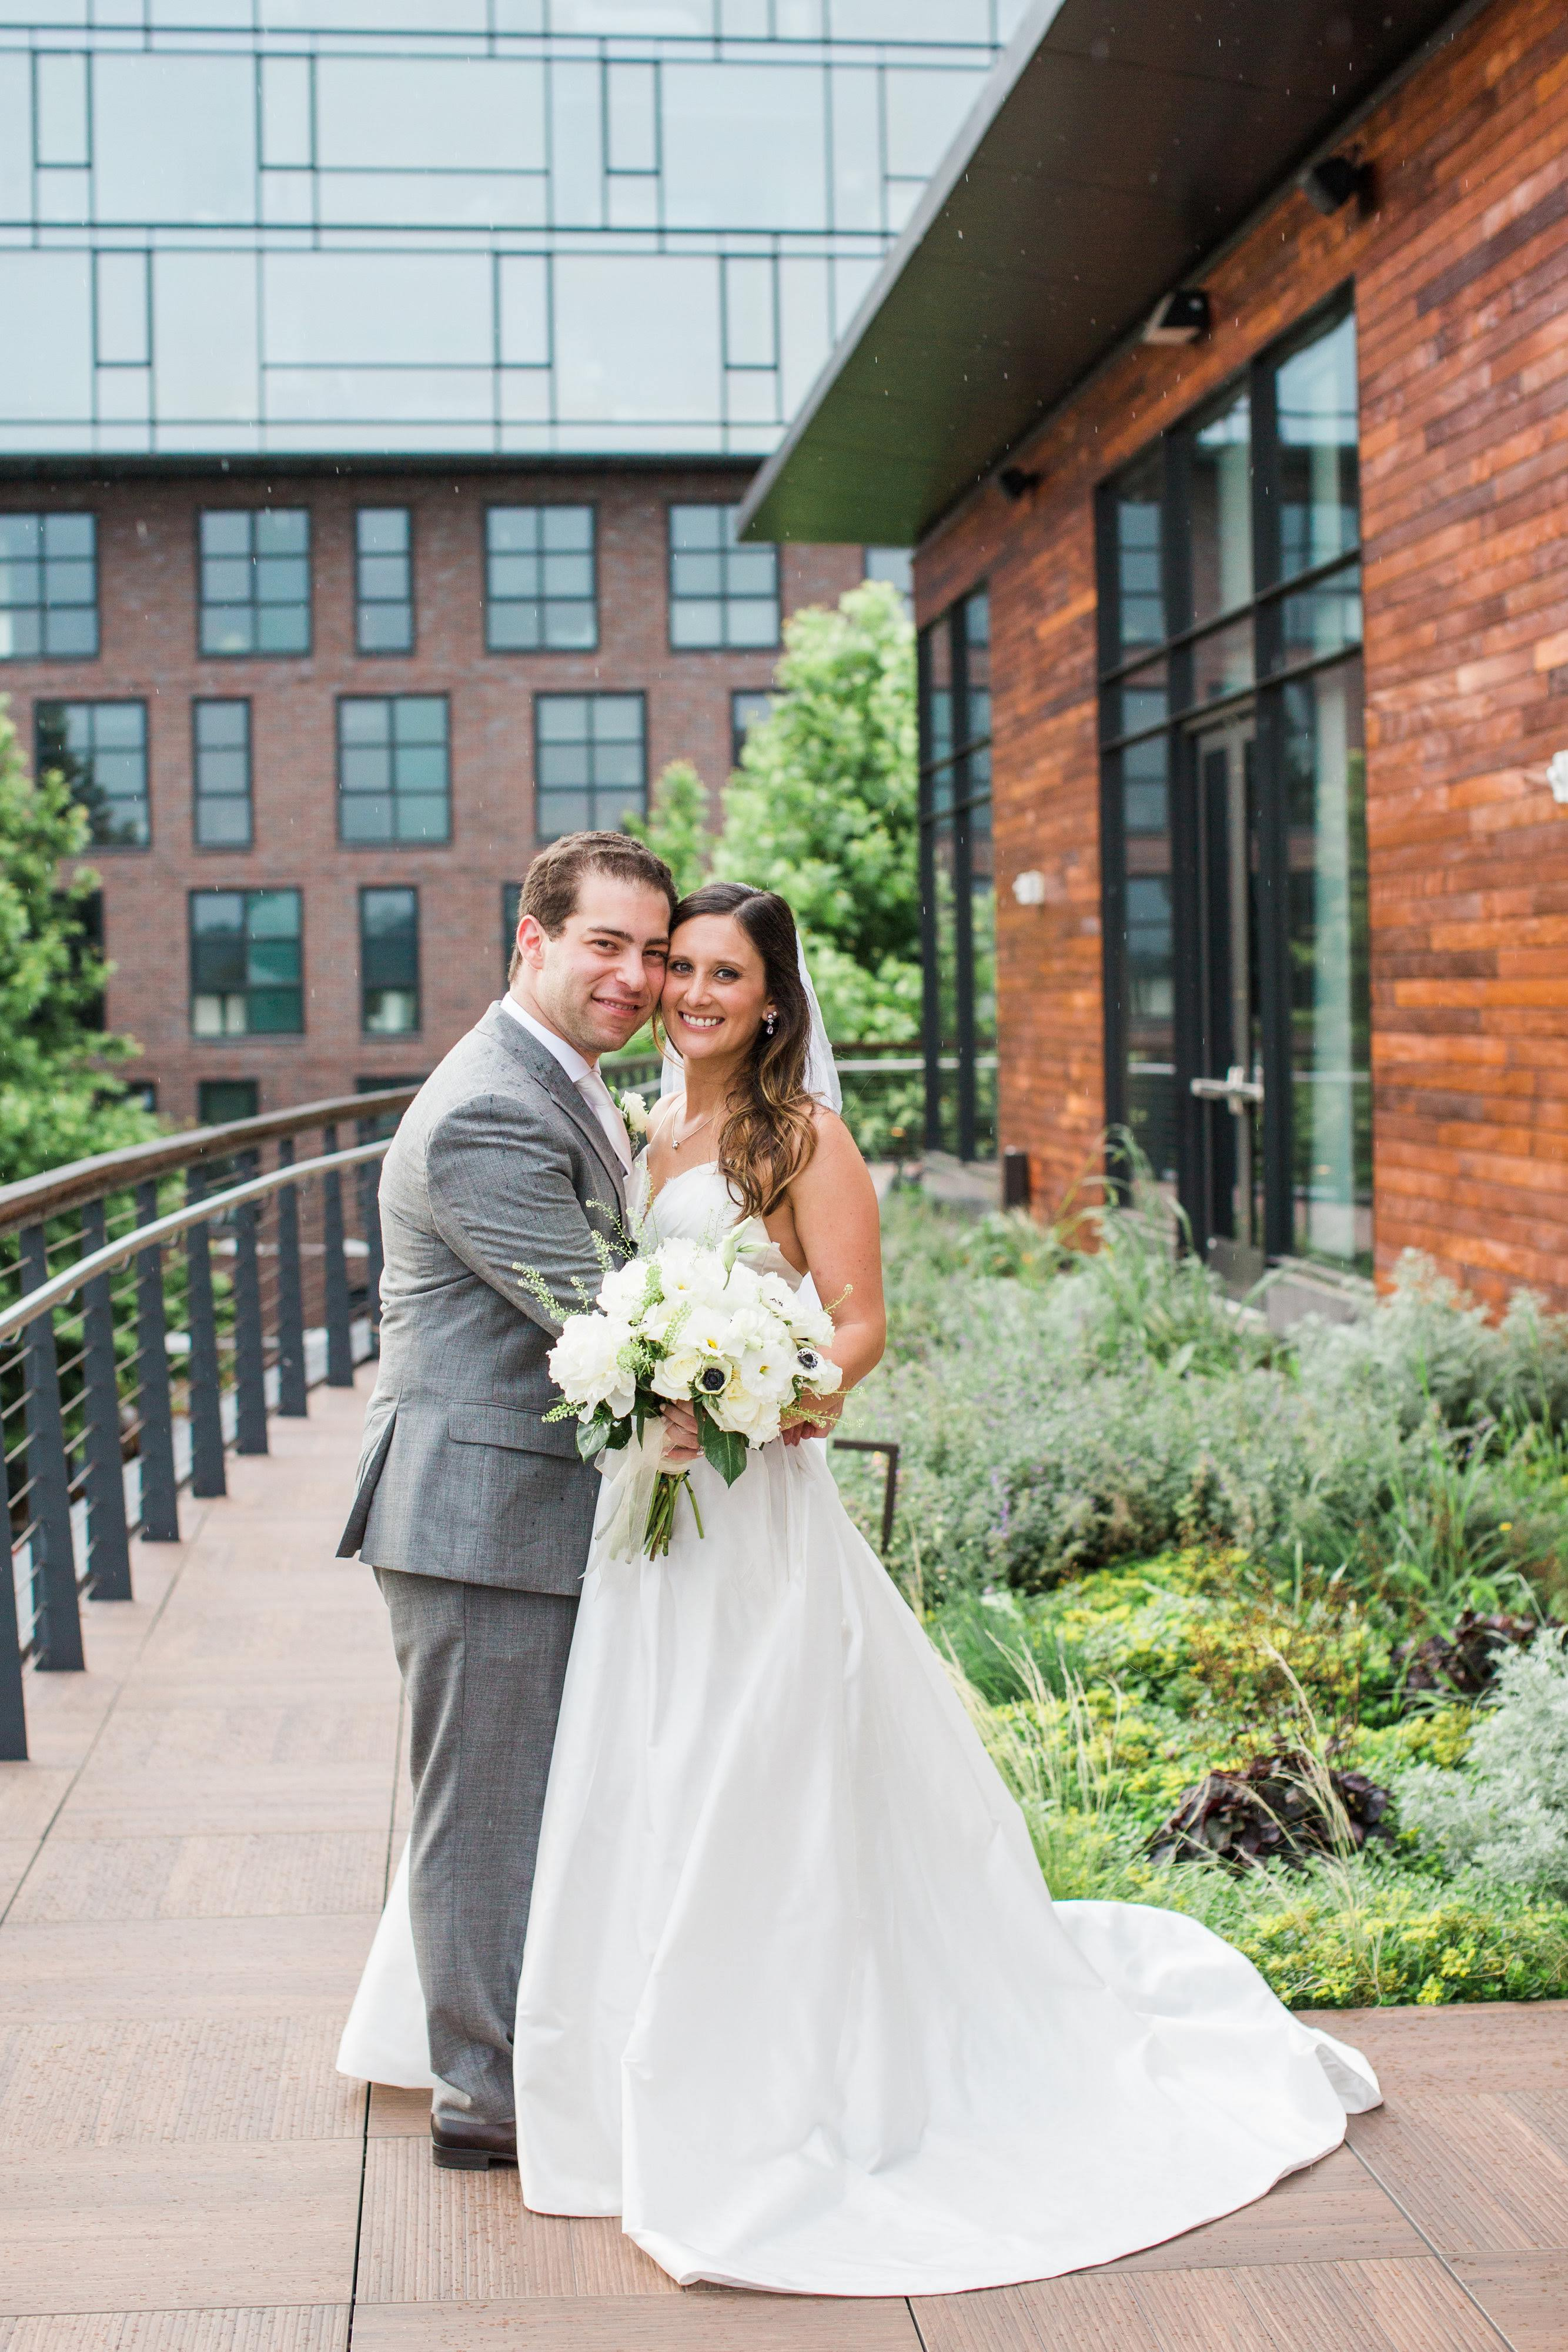 The combo indoor/outdoor space that District Winery can offer was exactly what she was looking for. (Image: Birds of a Feather Photography/{ }http://birdsofafeatherphotos.com){ }